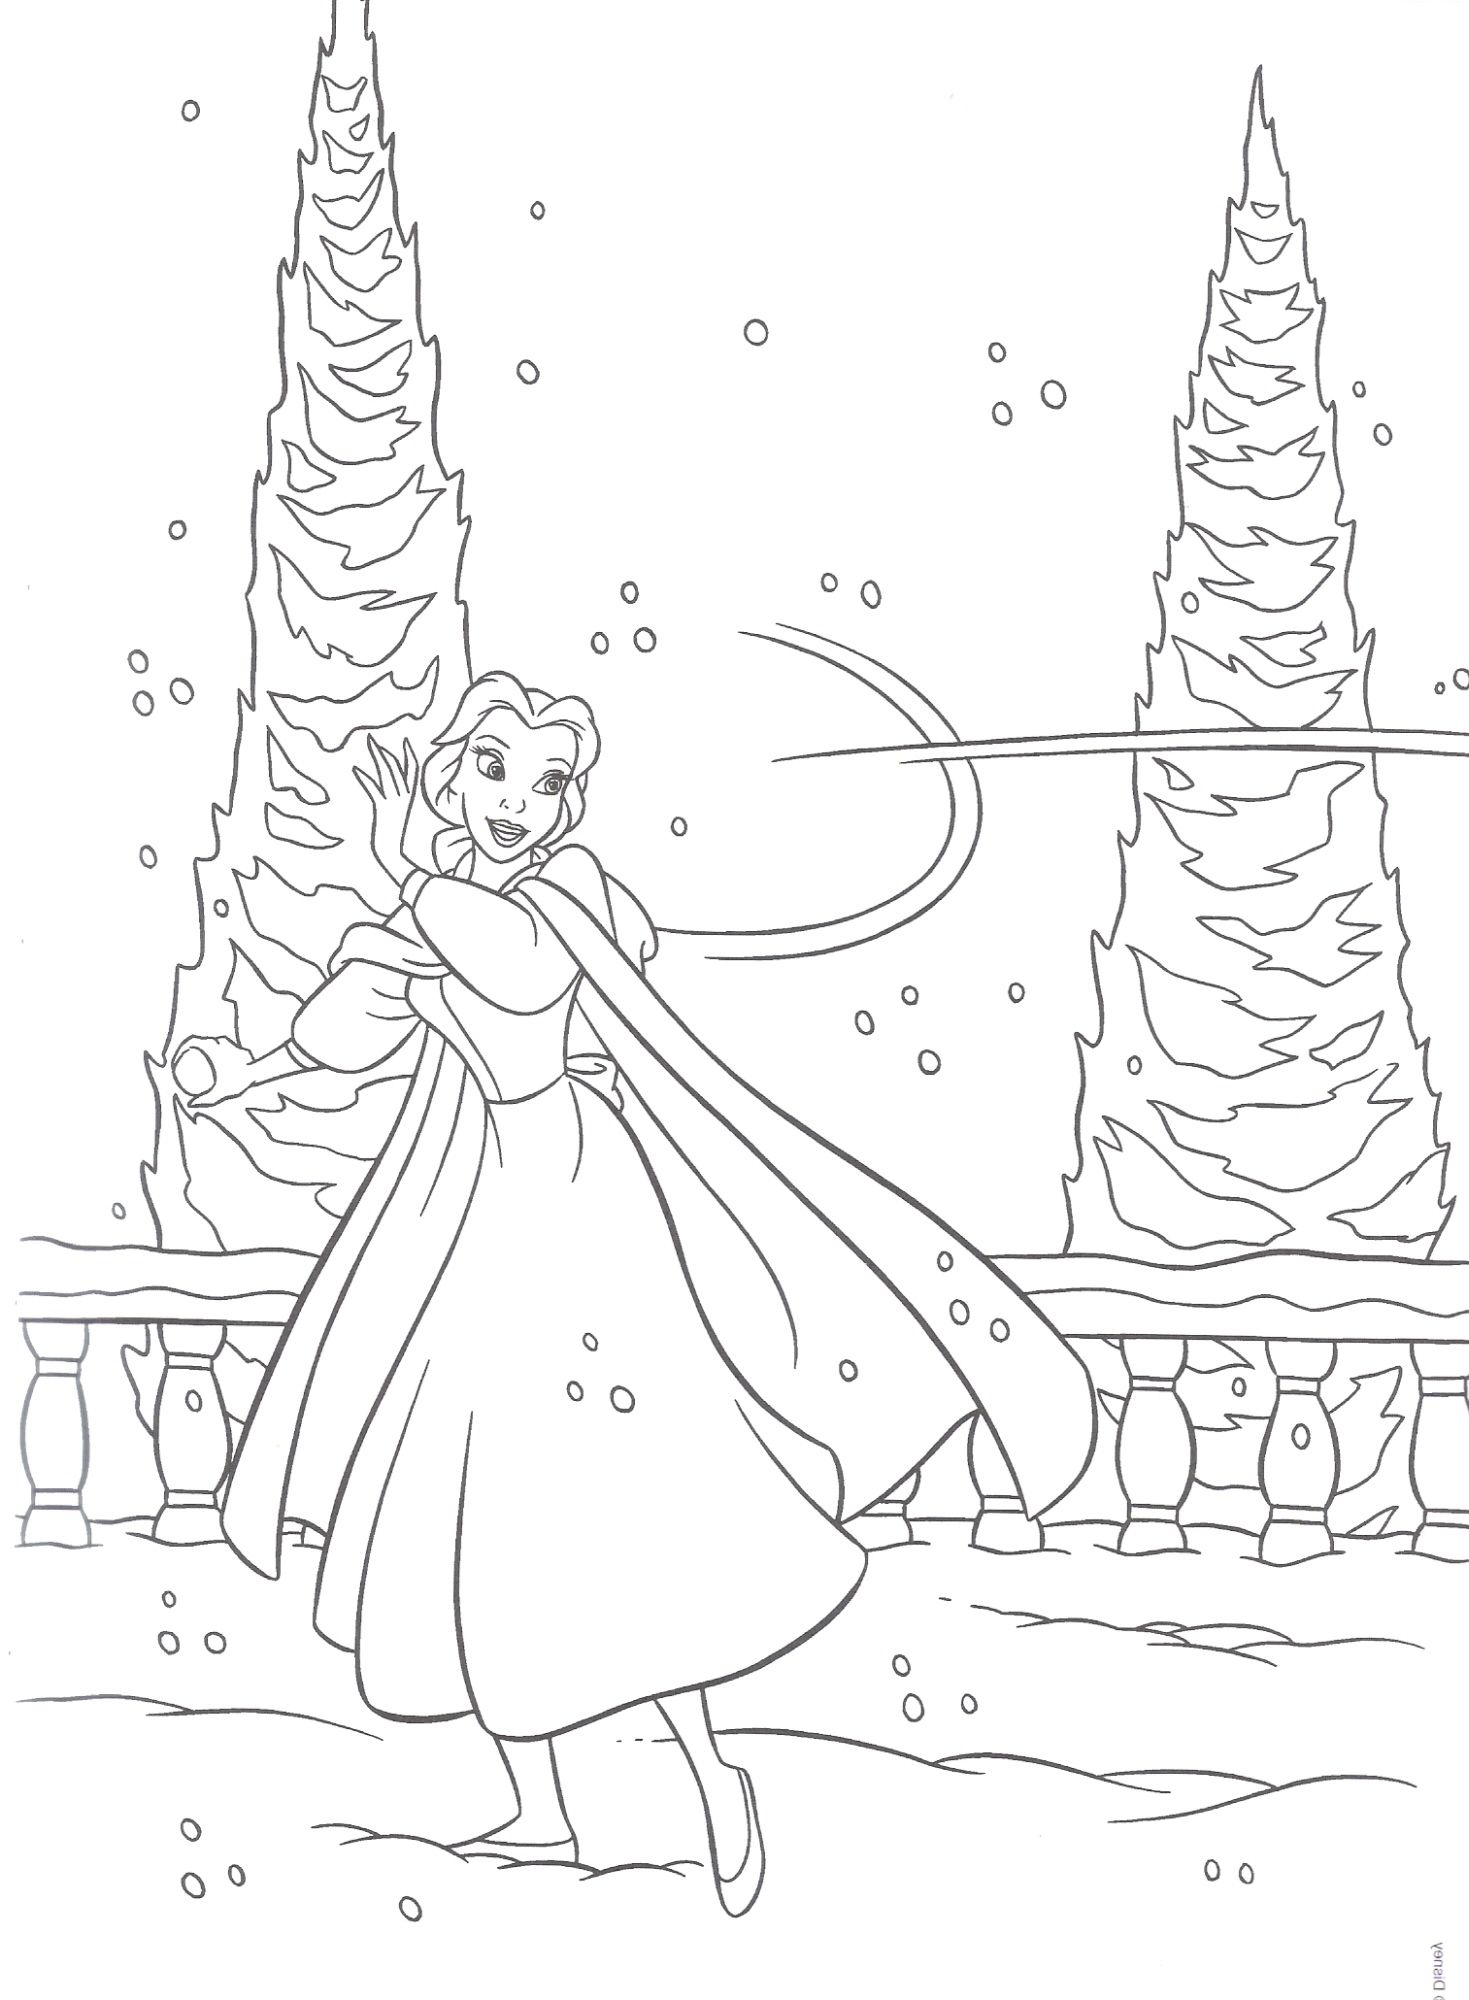 Disney princess christmas coloring pages free - Birthday Party Goodie Bags Activity Free Coloring Pages Beauty And The Beast